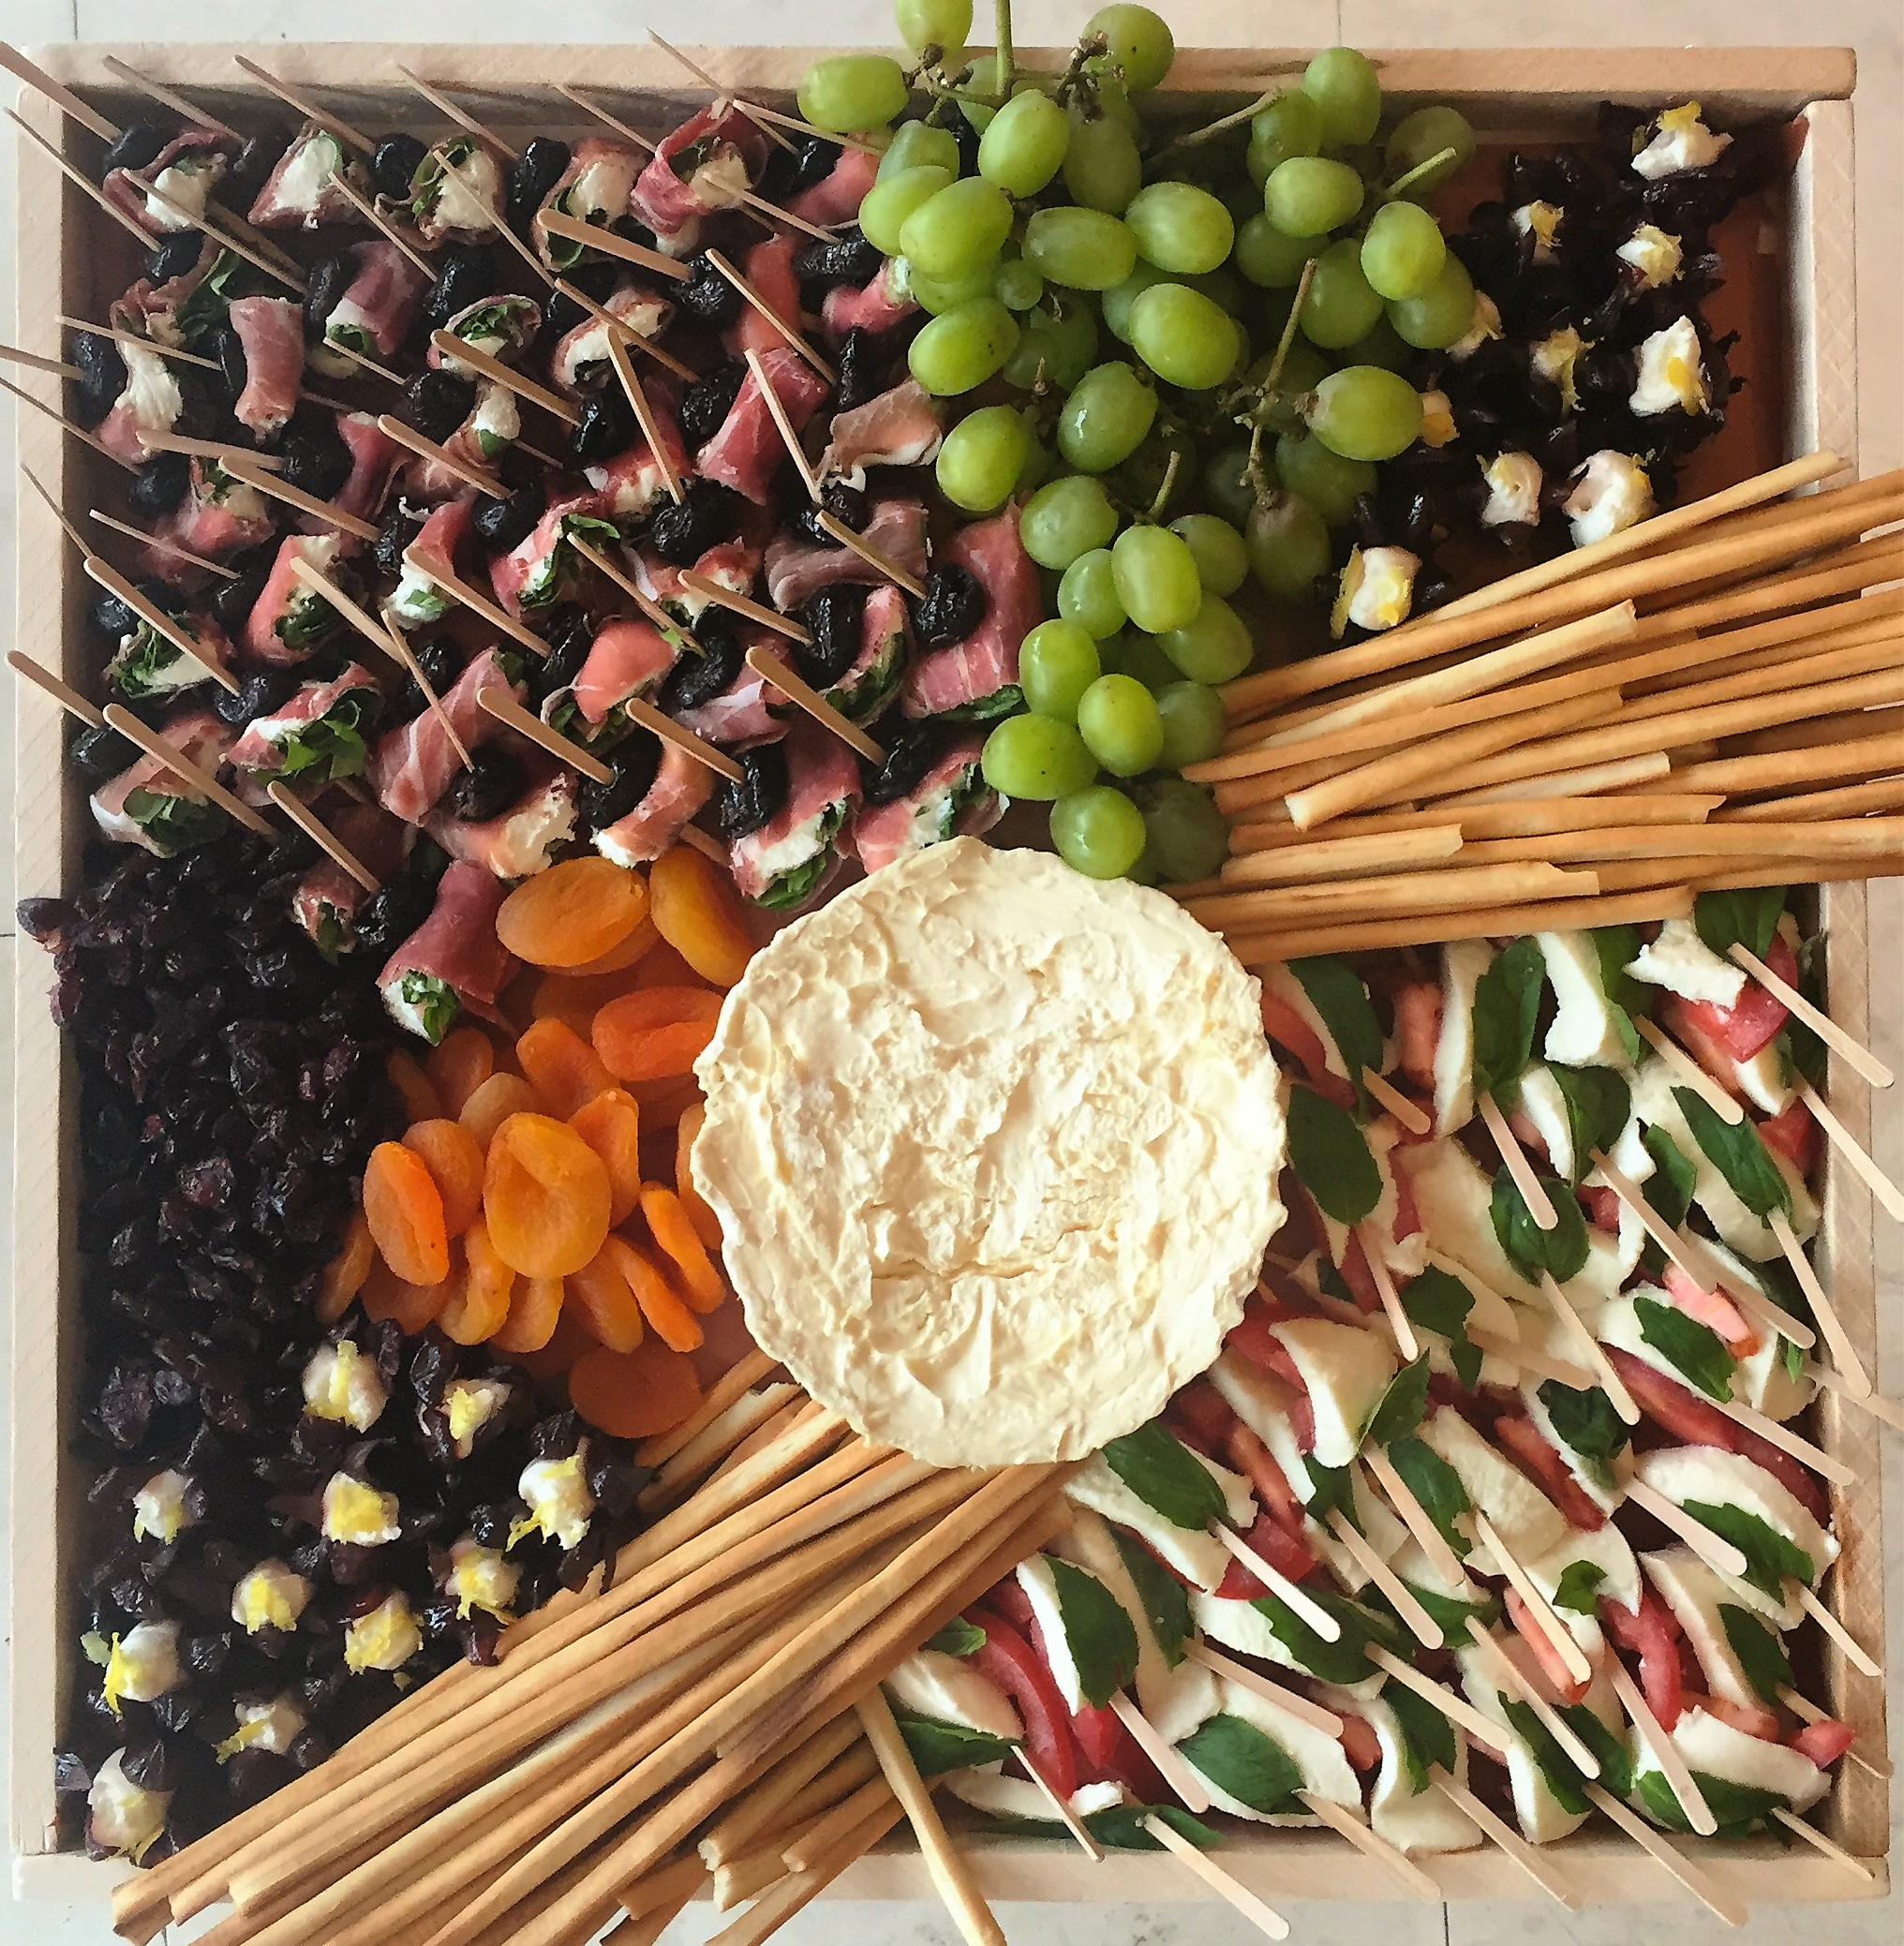 statement wedge - Instead of doing the heavy lifting of pulling together 3-5 disparate cheeses how about picking one very large piece and surrounding it with the appropriate accompaniments? Some ideas.